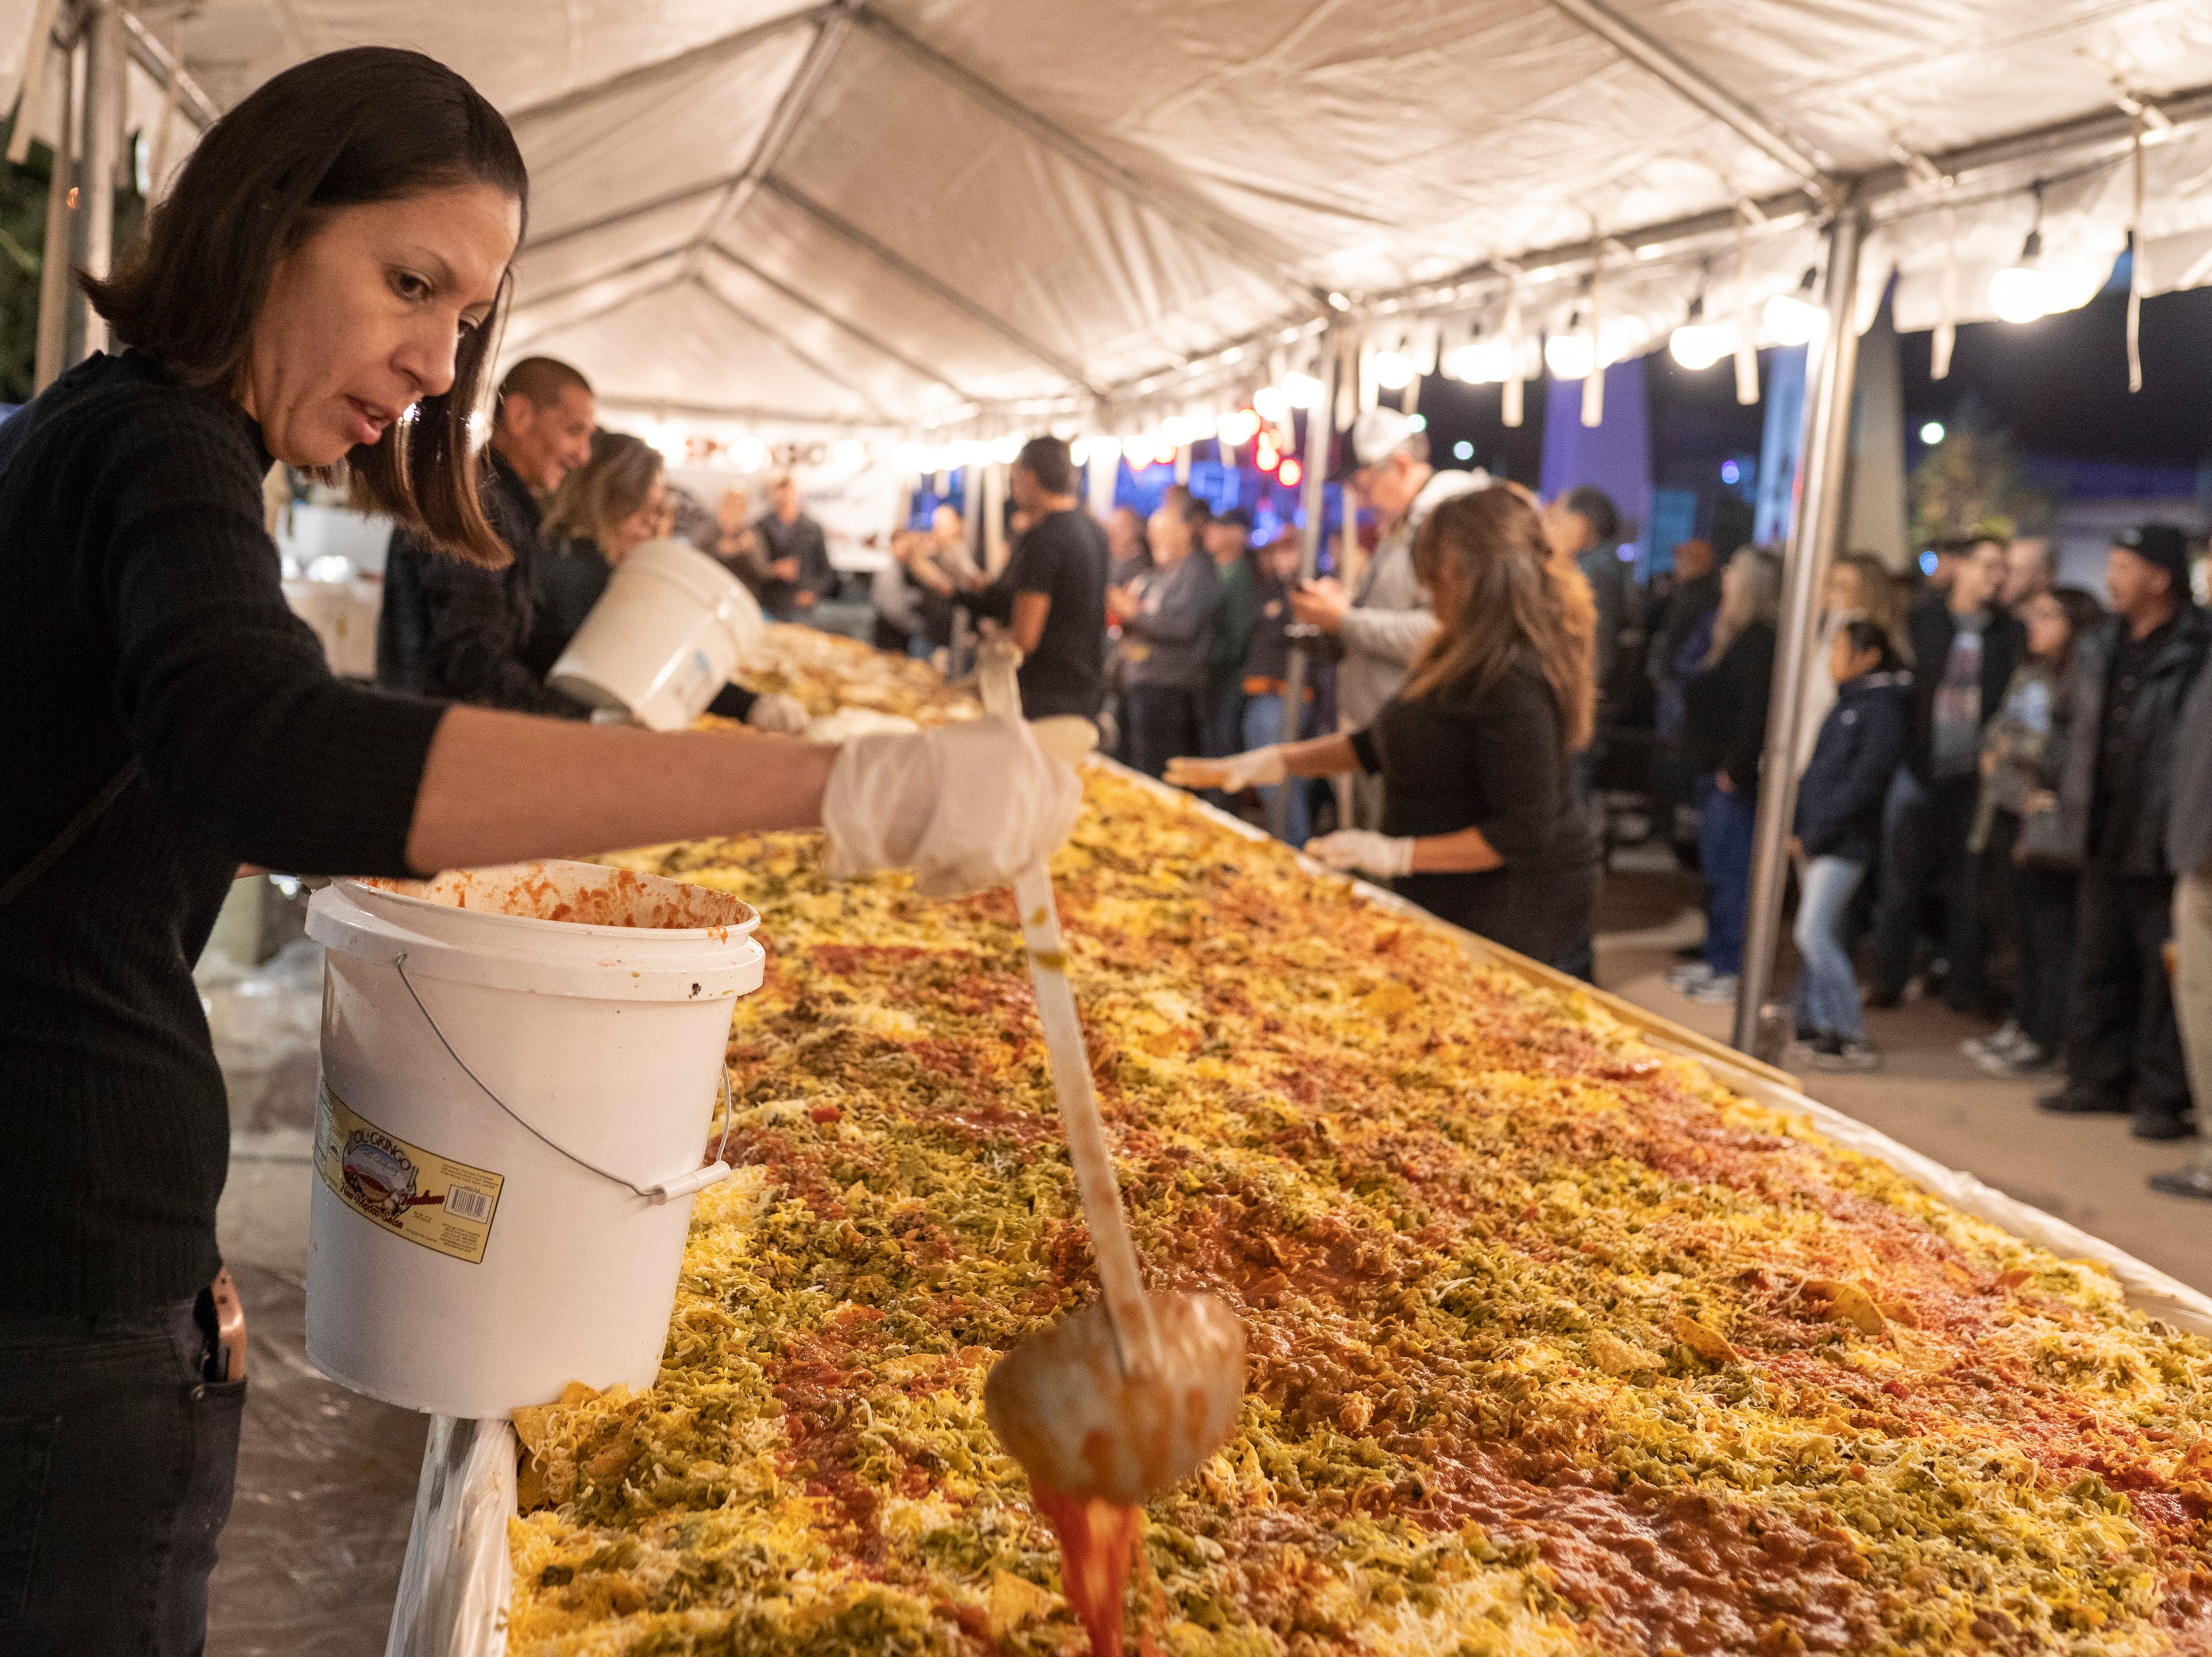 Dickerson's Catering employees mix nacho ingredients at Noche de Nachos. Las Cruces unofficially set the record for world's largest serving of nachos Saturday, Nov. 10, 2018, in downtown Las Cruces.